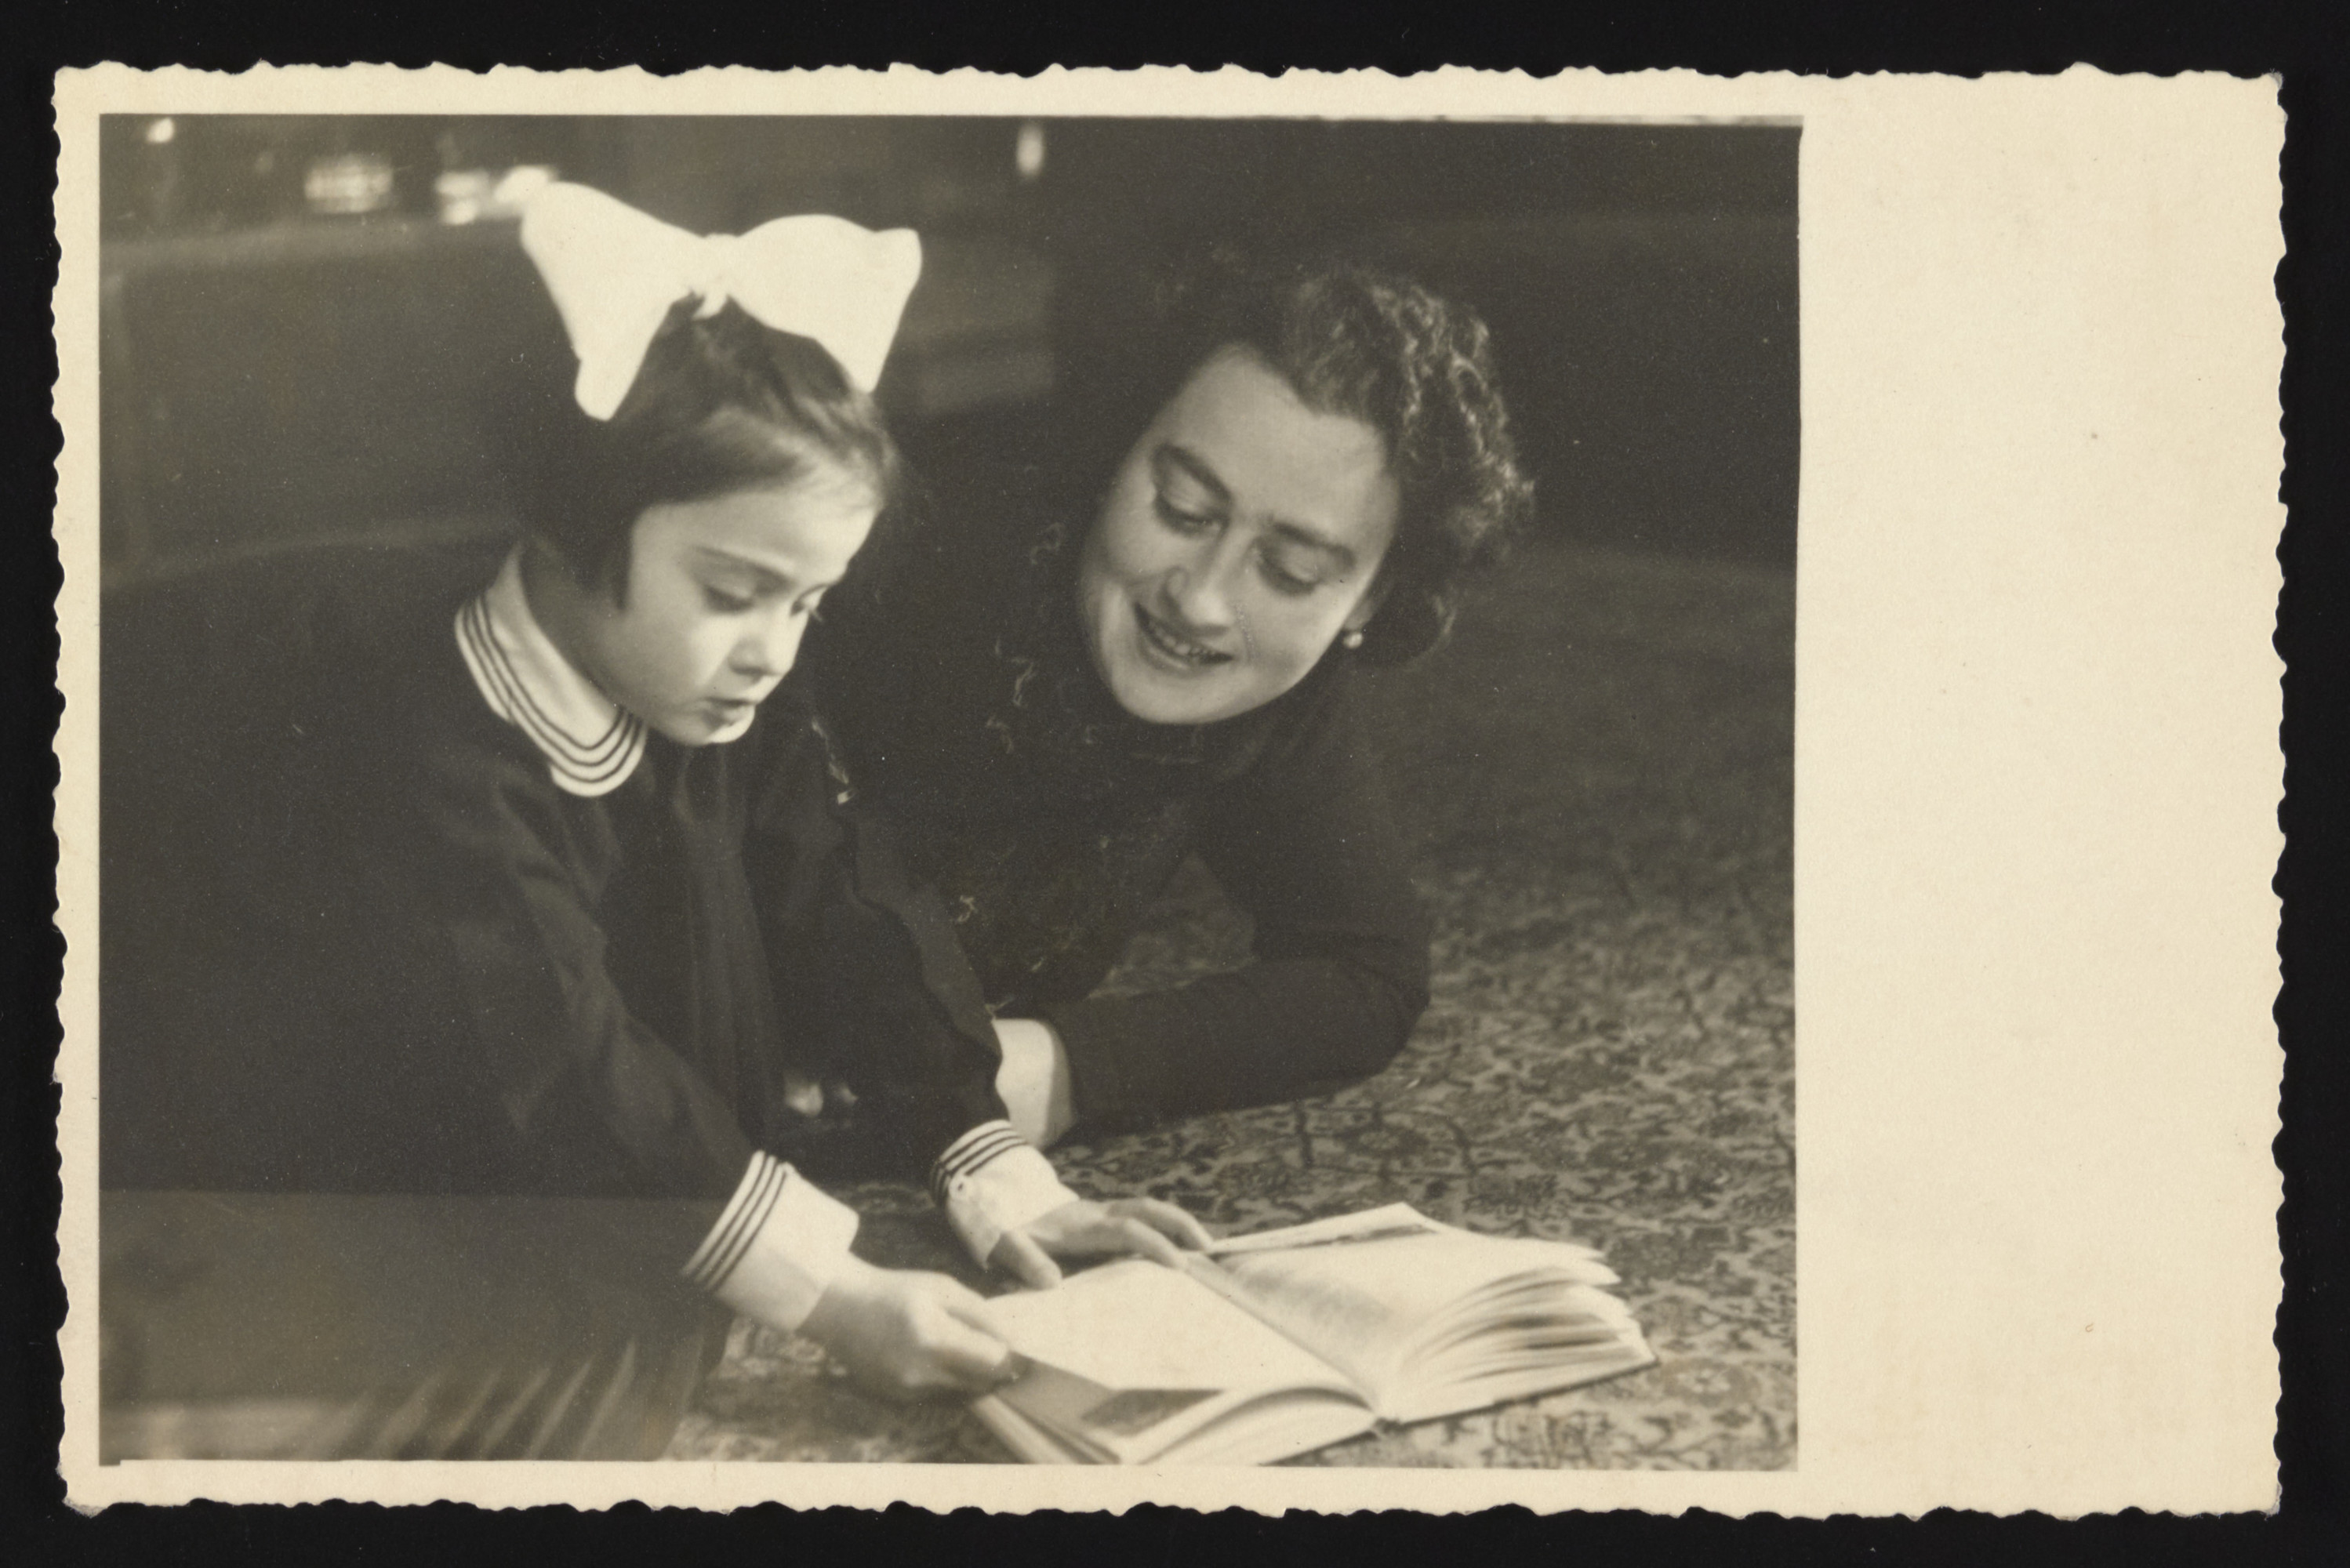 Tamar (Ruth) and her mother Hana read a book in their home in Zagreb, Yugoslavia shortly before they fled to the Italian zone.